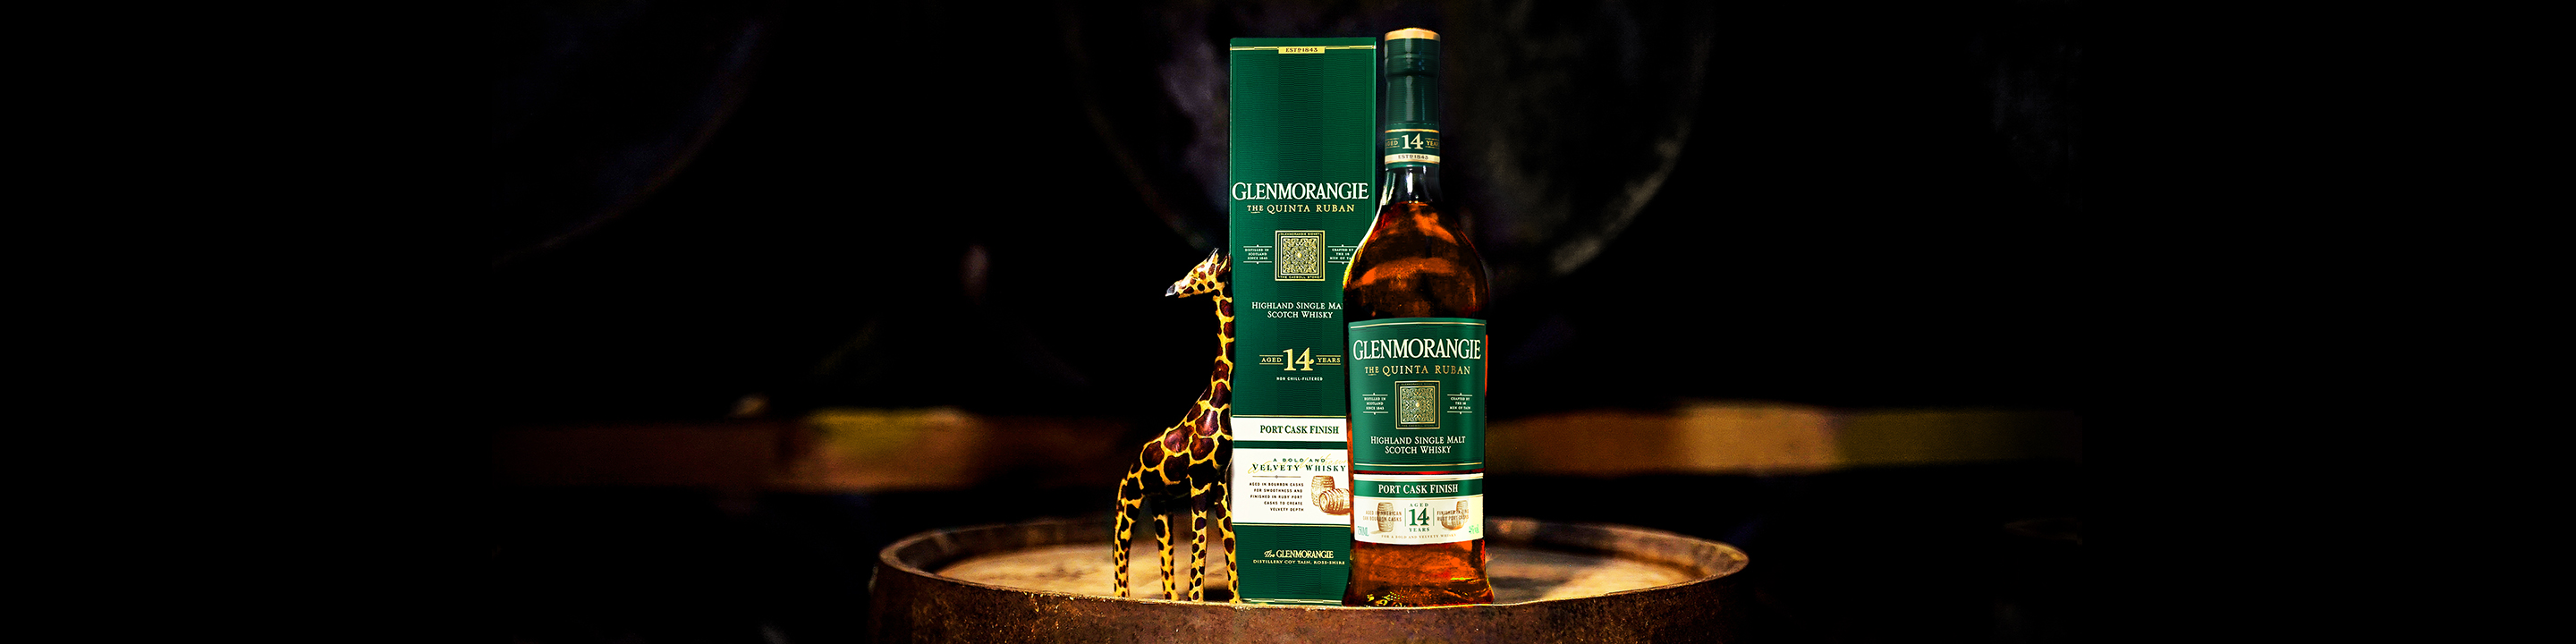 Glenmorangie Single Malt Scotch Whisky originates in the Scottish Highlands where it is distilled in the tallest malt whisky stills in Scotland, expertly matured in the finest oak casks, only used twice. Glenmorangie distillery, founded in 1843 is renowned as a pioneer in whisky making, uniting tradition with innovation. Buy Glenmorangie online now from your nearby liquor store via Minibar Delivery.